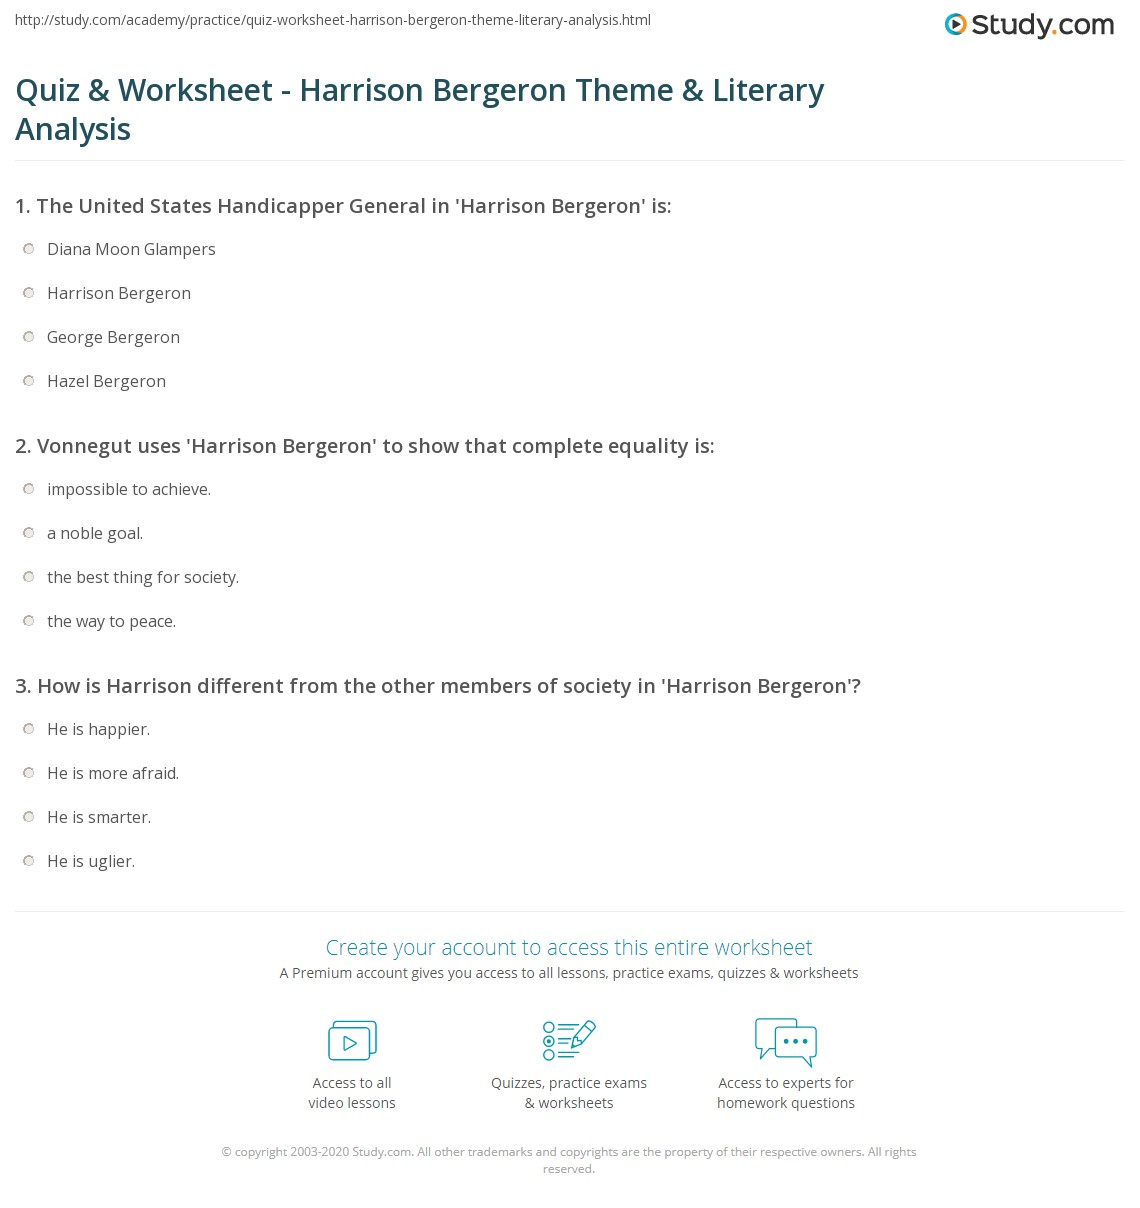 https://study.com/academy/practice/quiz-worksheet-harrison-bergeron-theme-literary-analysis.jpg